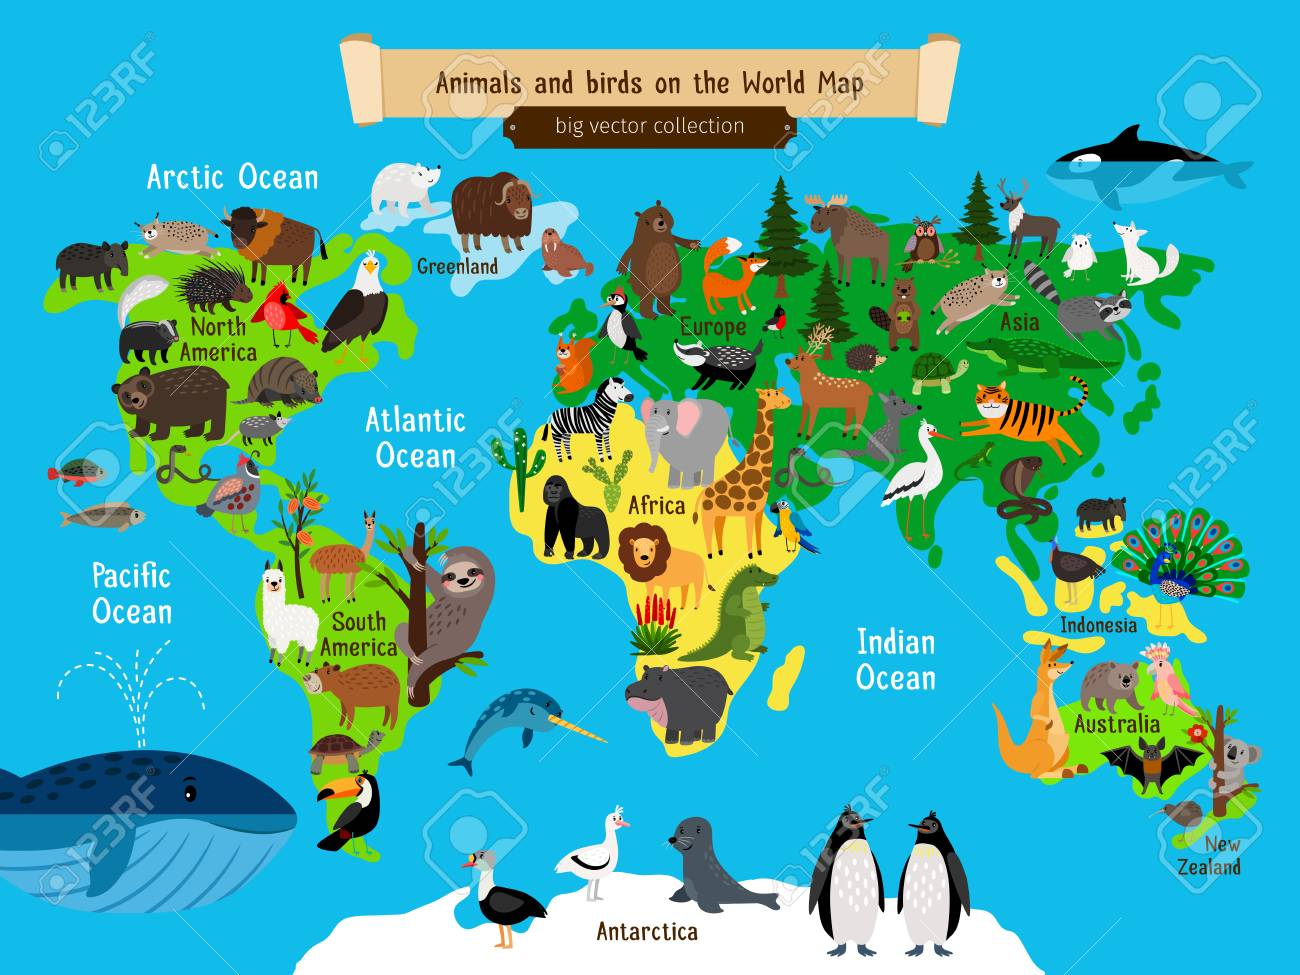 World map animals europe and asia south and north america vector world map animals europe and asia south and north america australia and africa and ocean animals geography map vector illustration for kids gumiabroncs Image collections